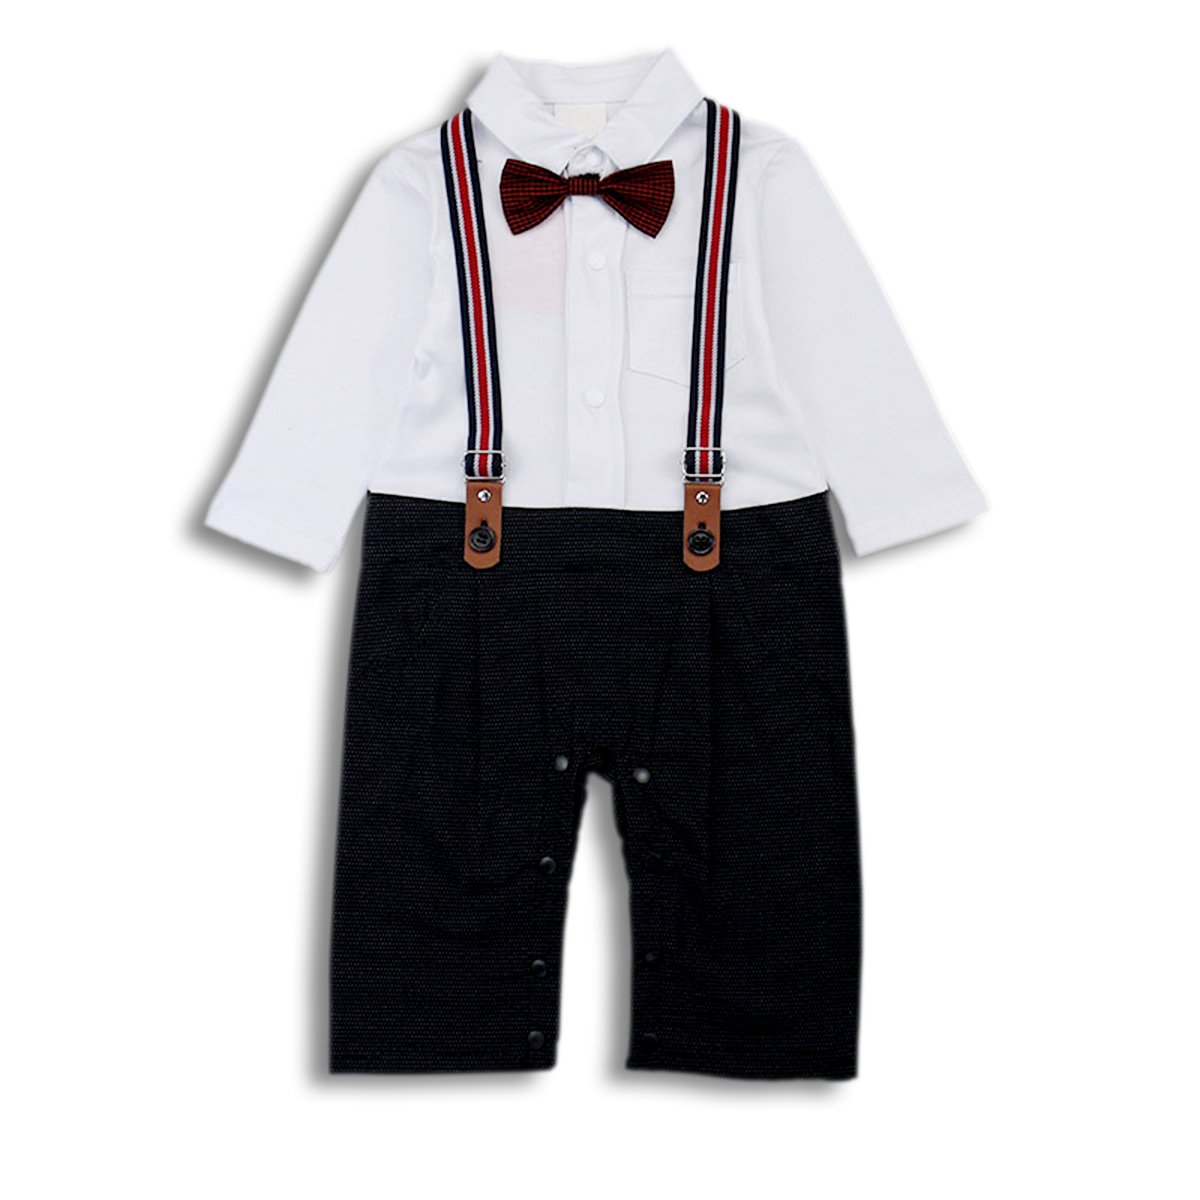 Baby Boy Romper Jumpsuit Toddler Outfits Suit Set with Bowtie & Straps BC-BDA-01